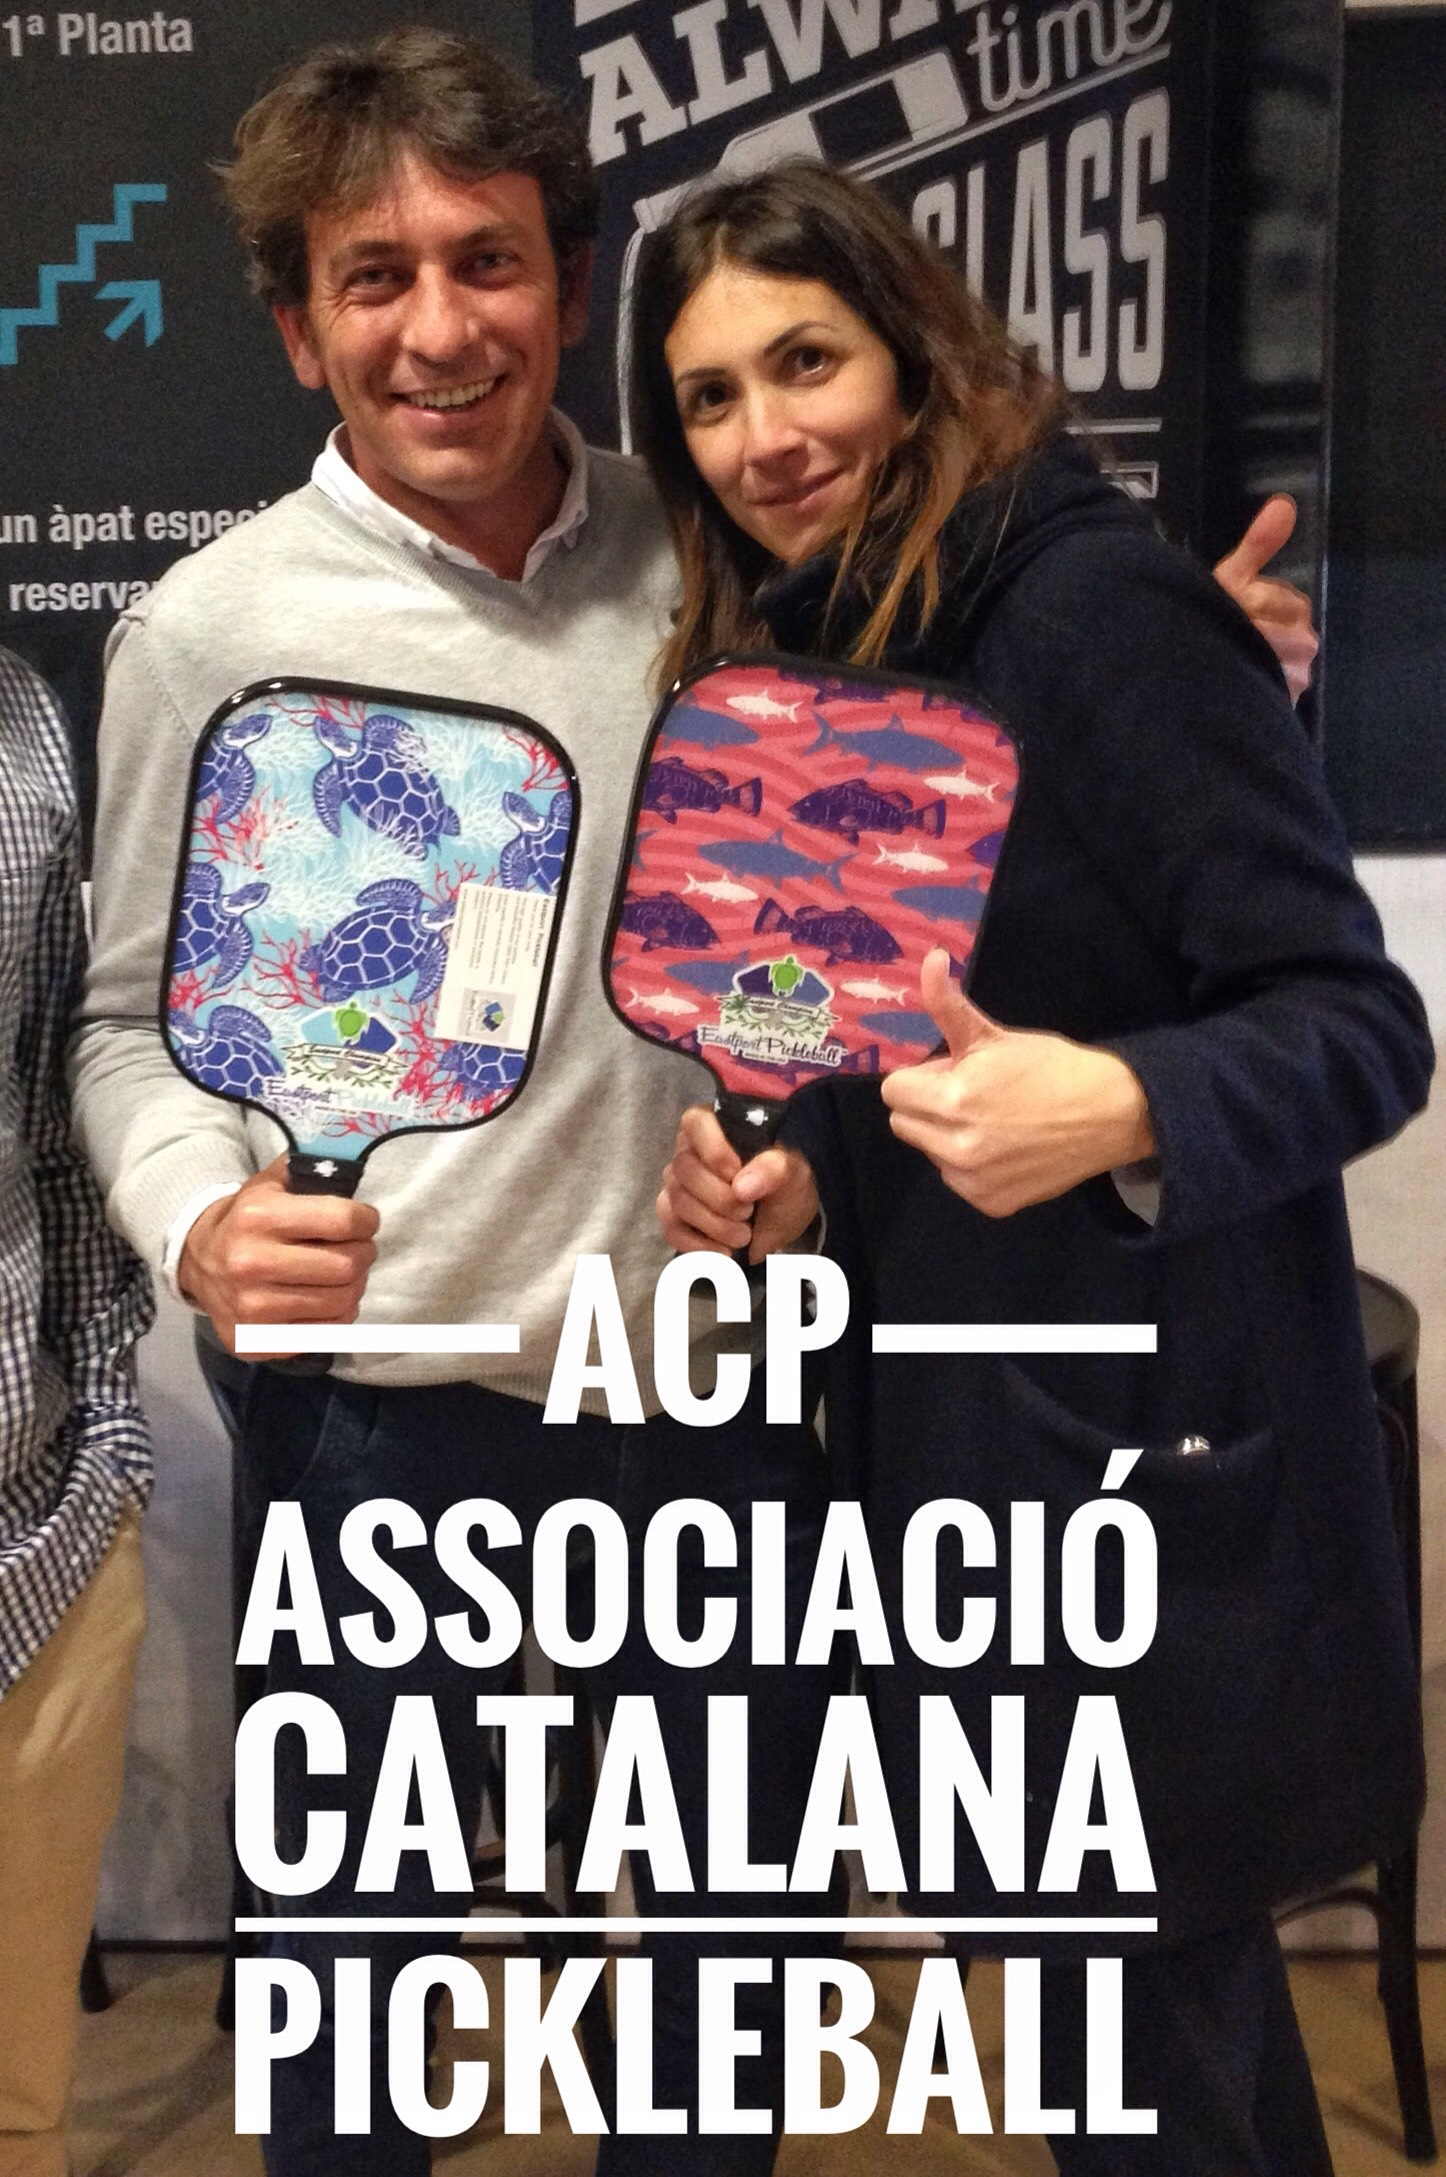 Best of luck to the pickleball club in Barcelona